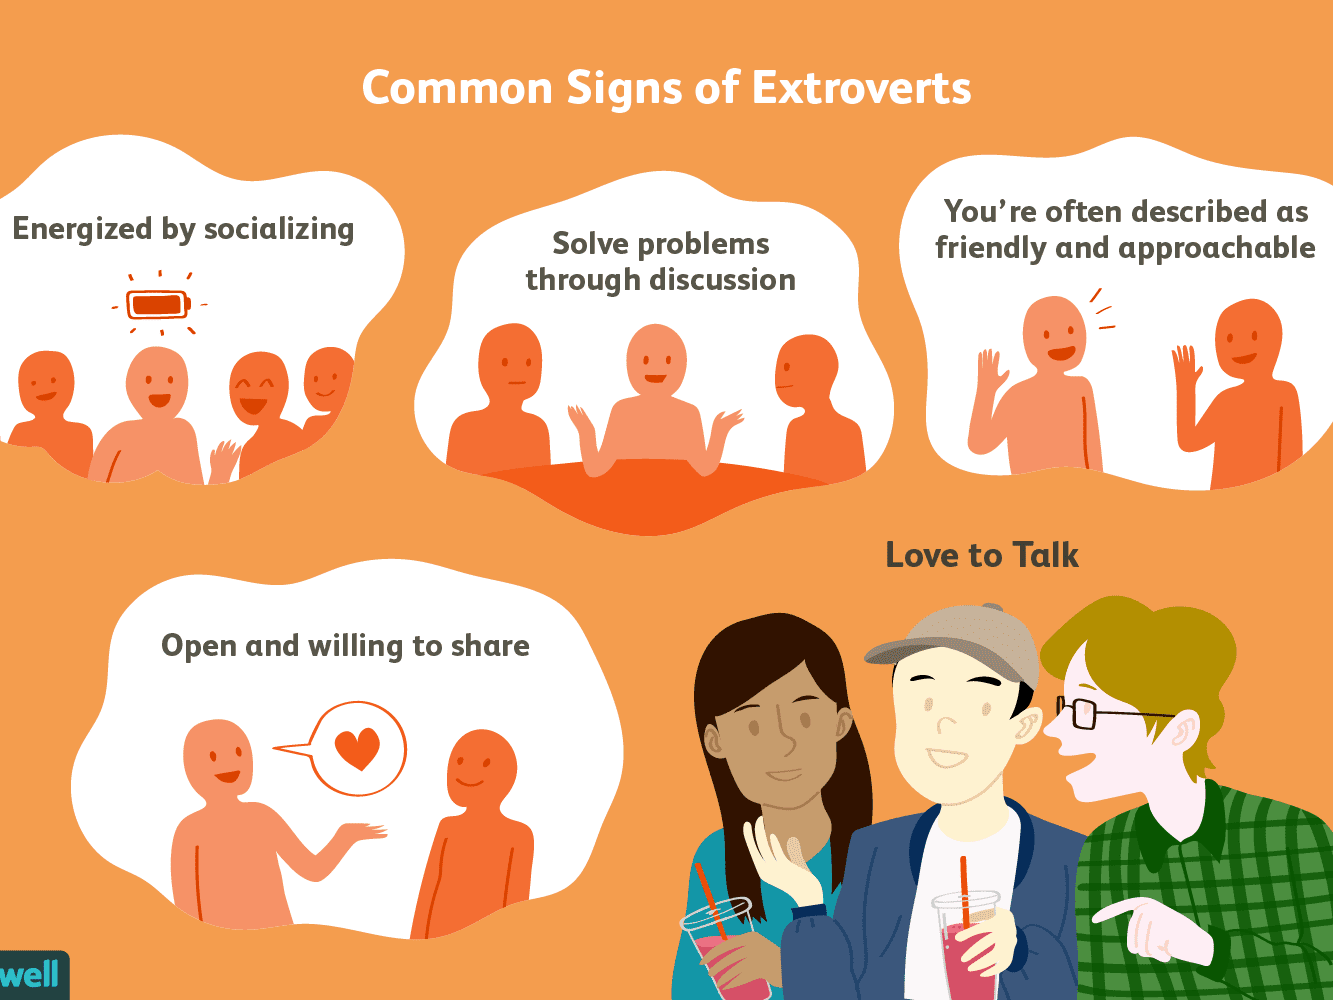 5 Personality Traits of Extroverts